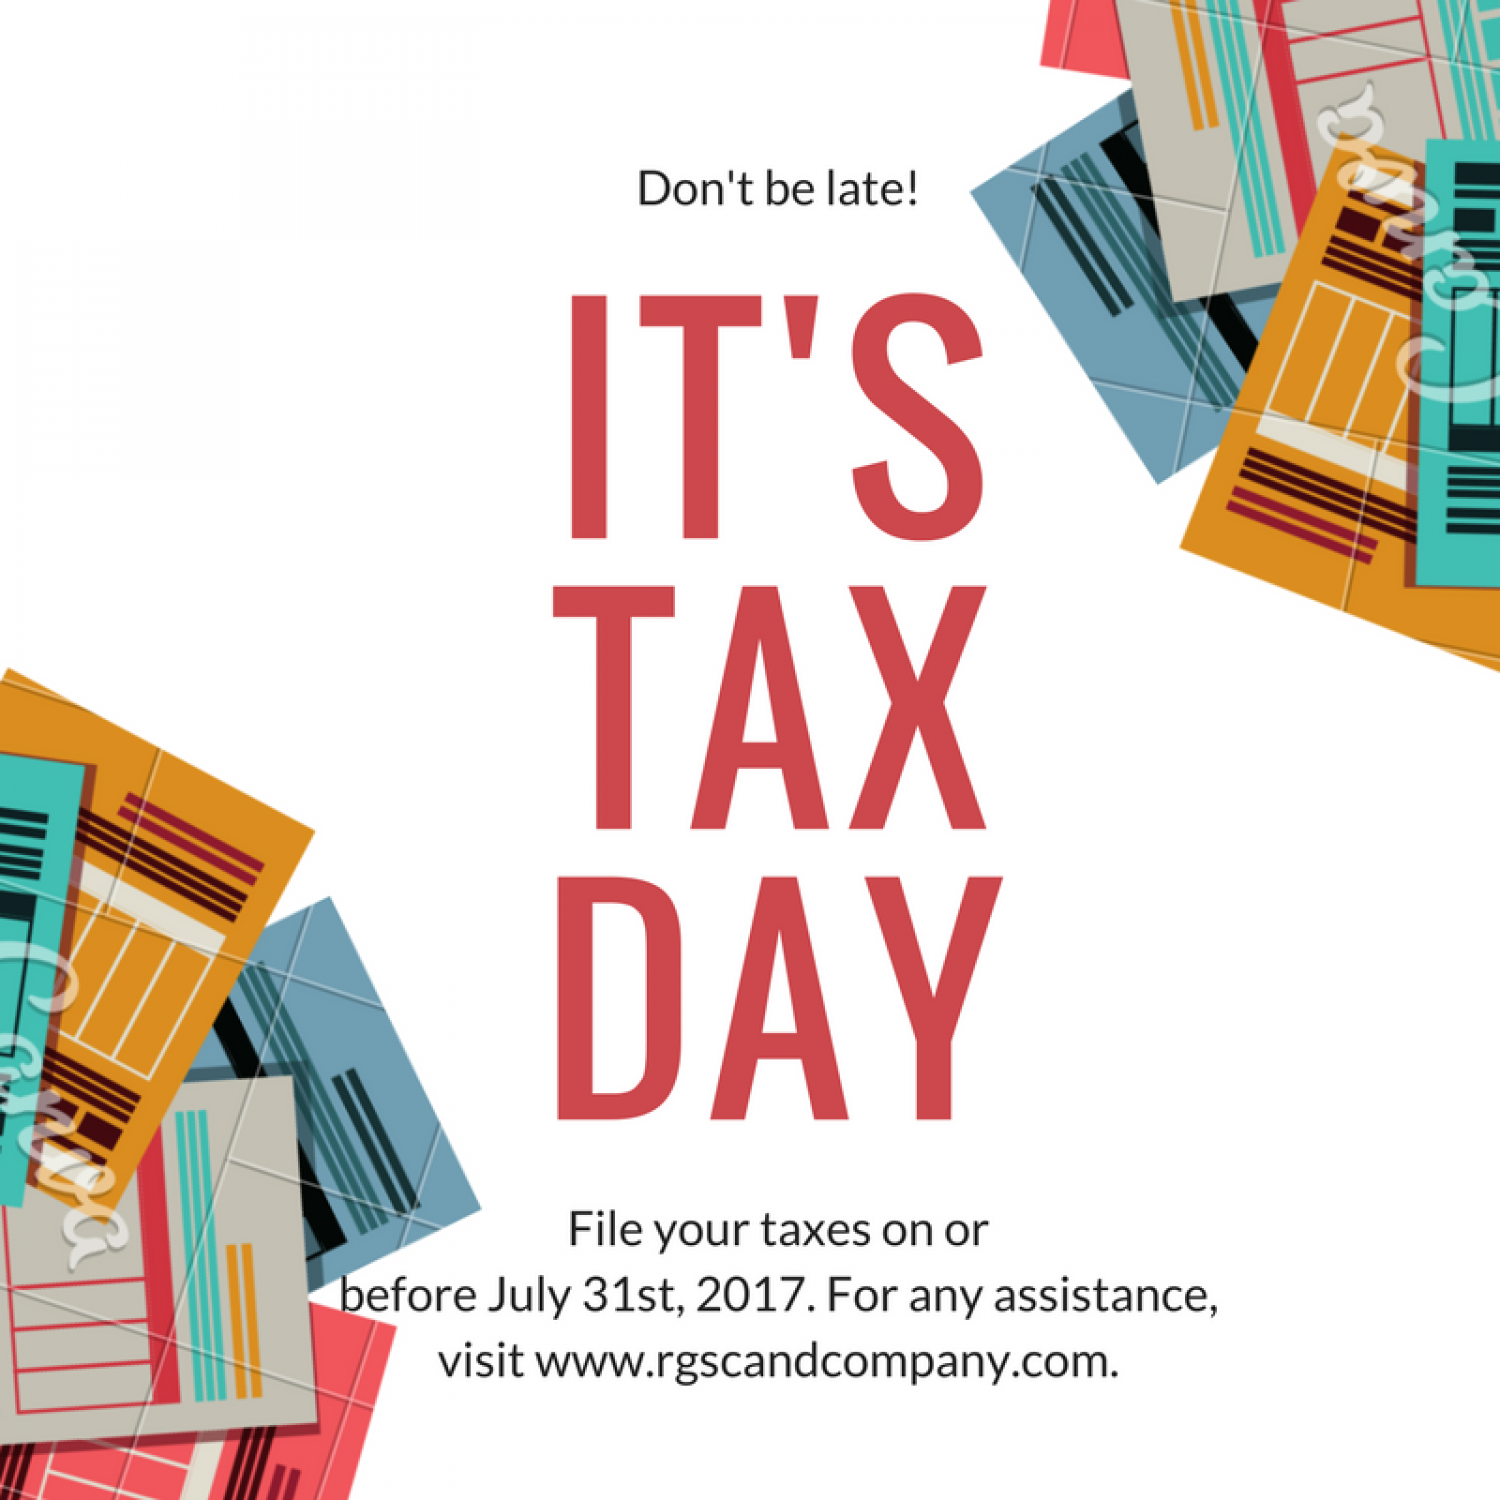 Don't be Late: It's the Tax Day, On or Before 31st July! Infographic